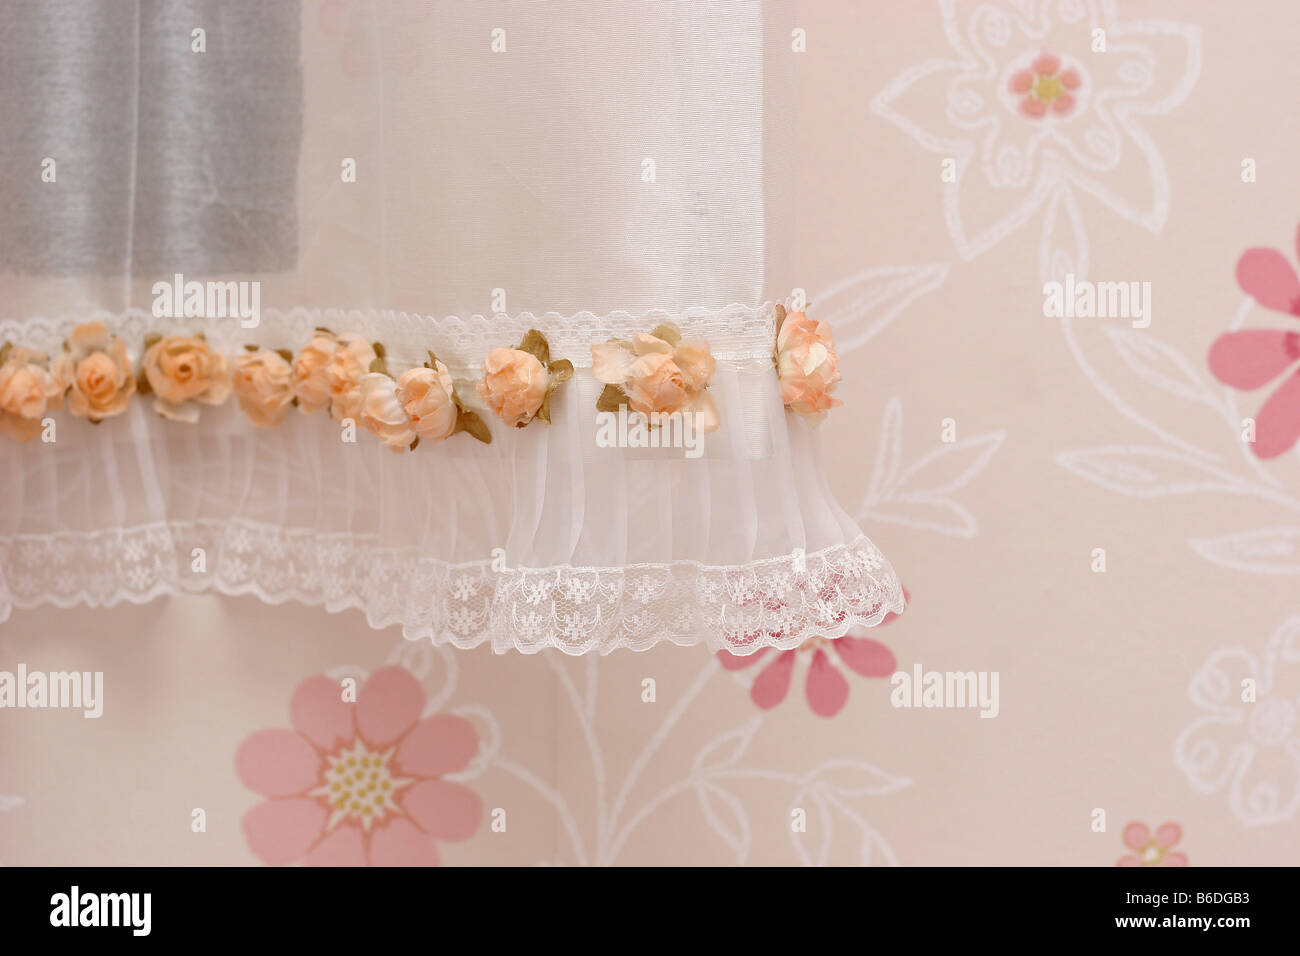 white Curtains on a window with a floral wall - Stock Image